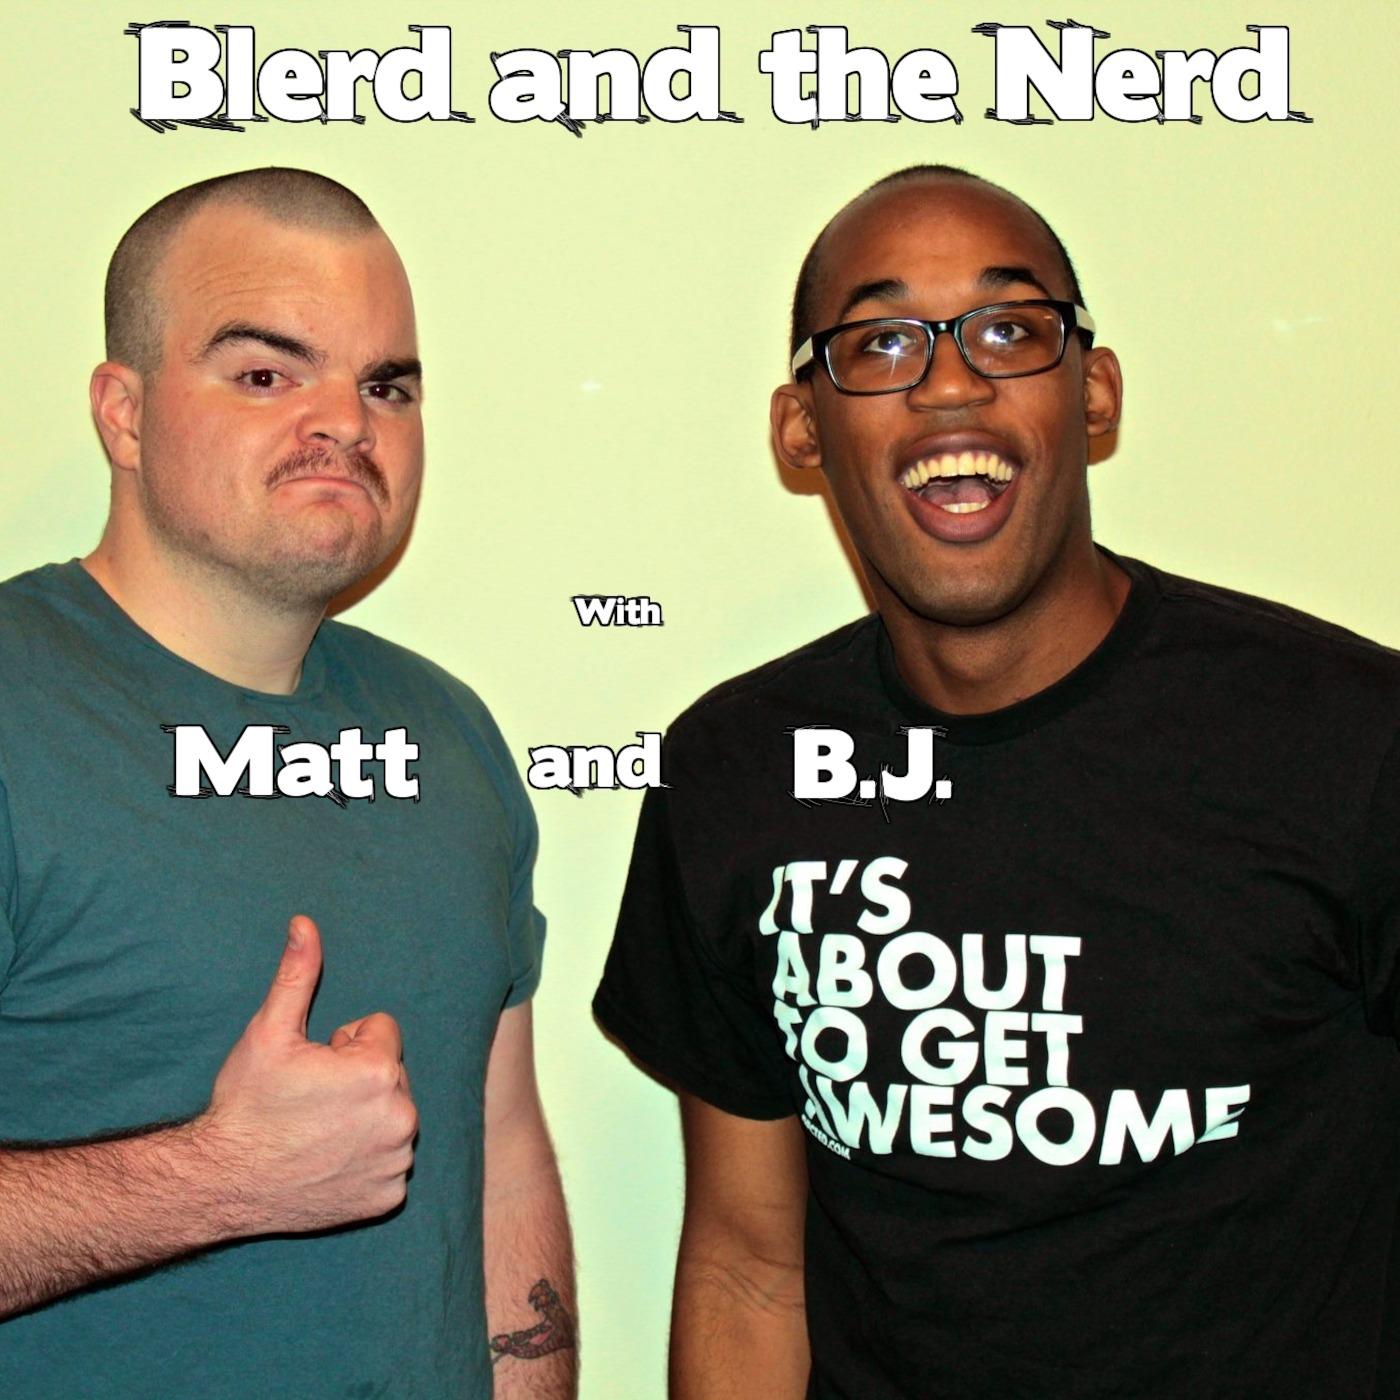 Blerd and the Nerd